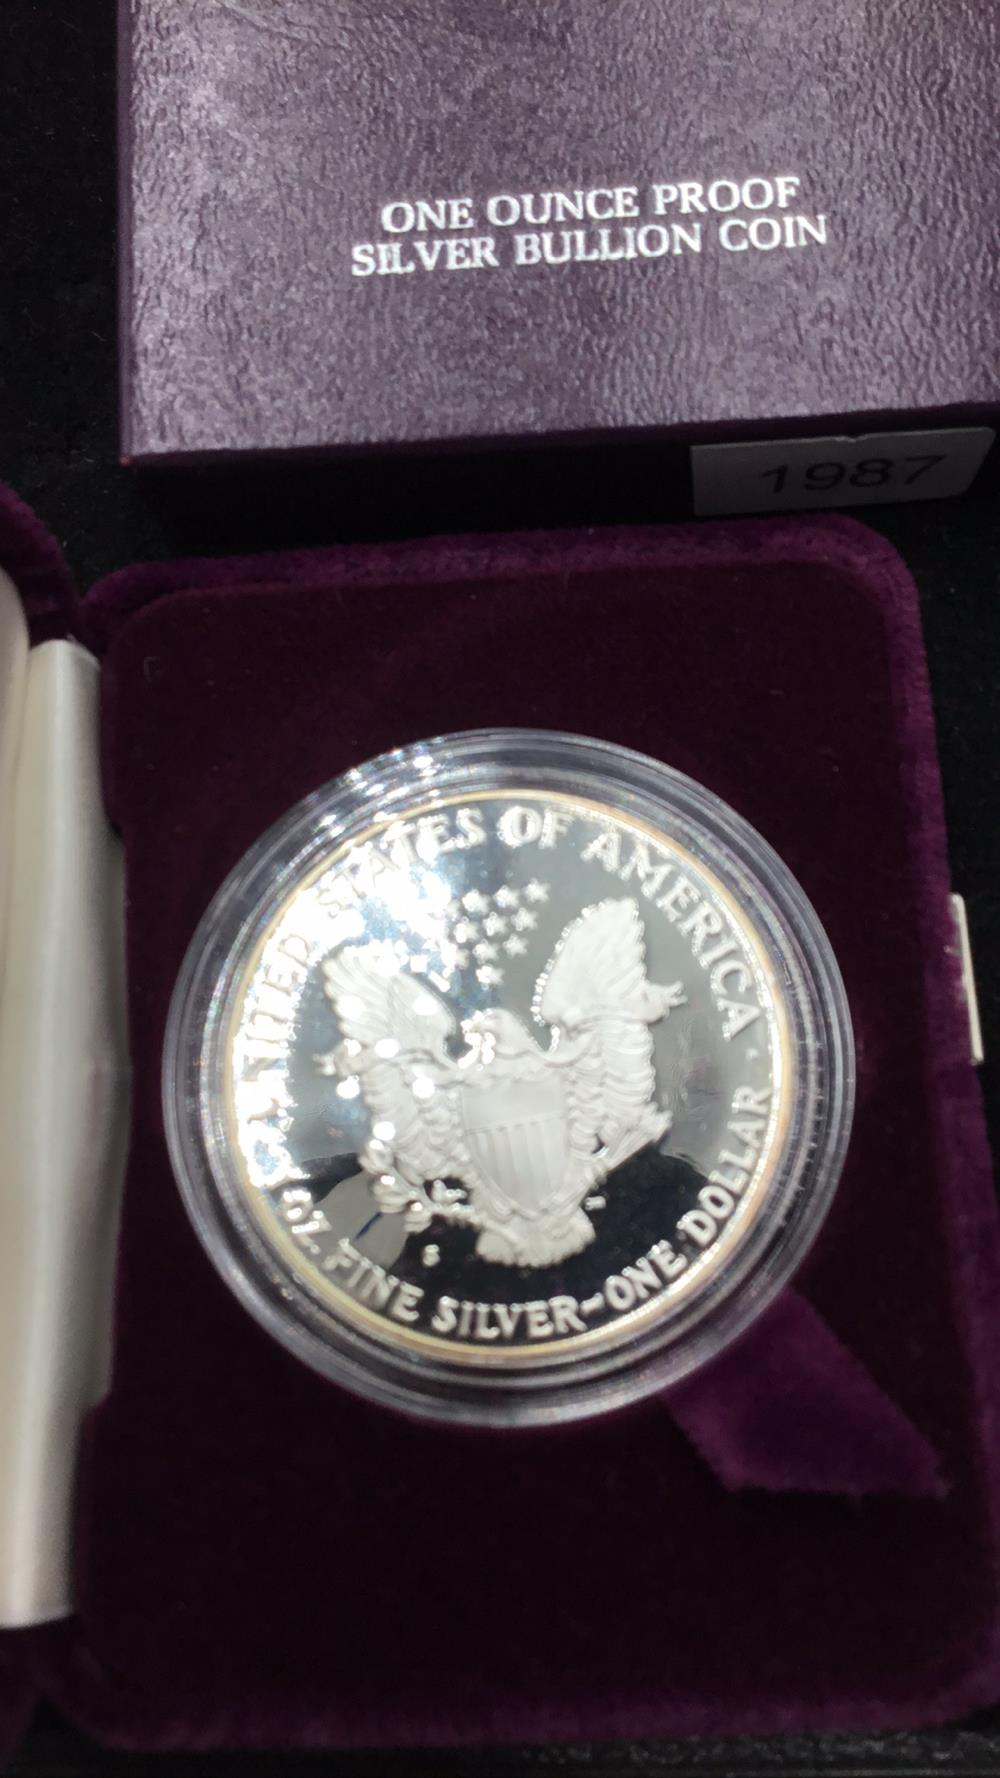 Lot 132: American eagle 1 ounce proof silver bullion coin